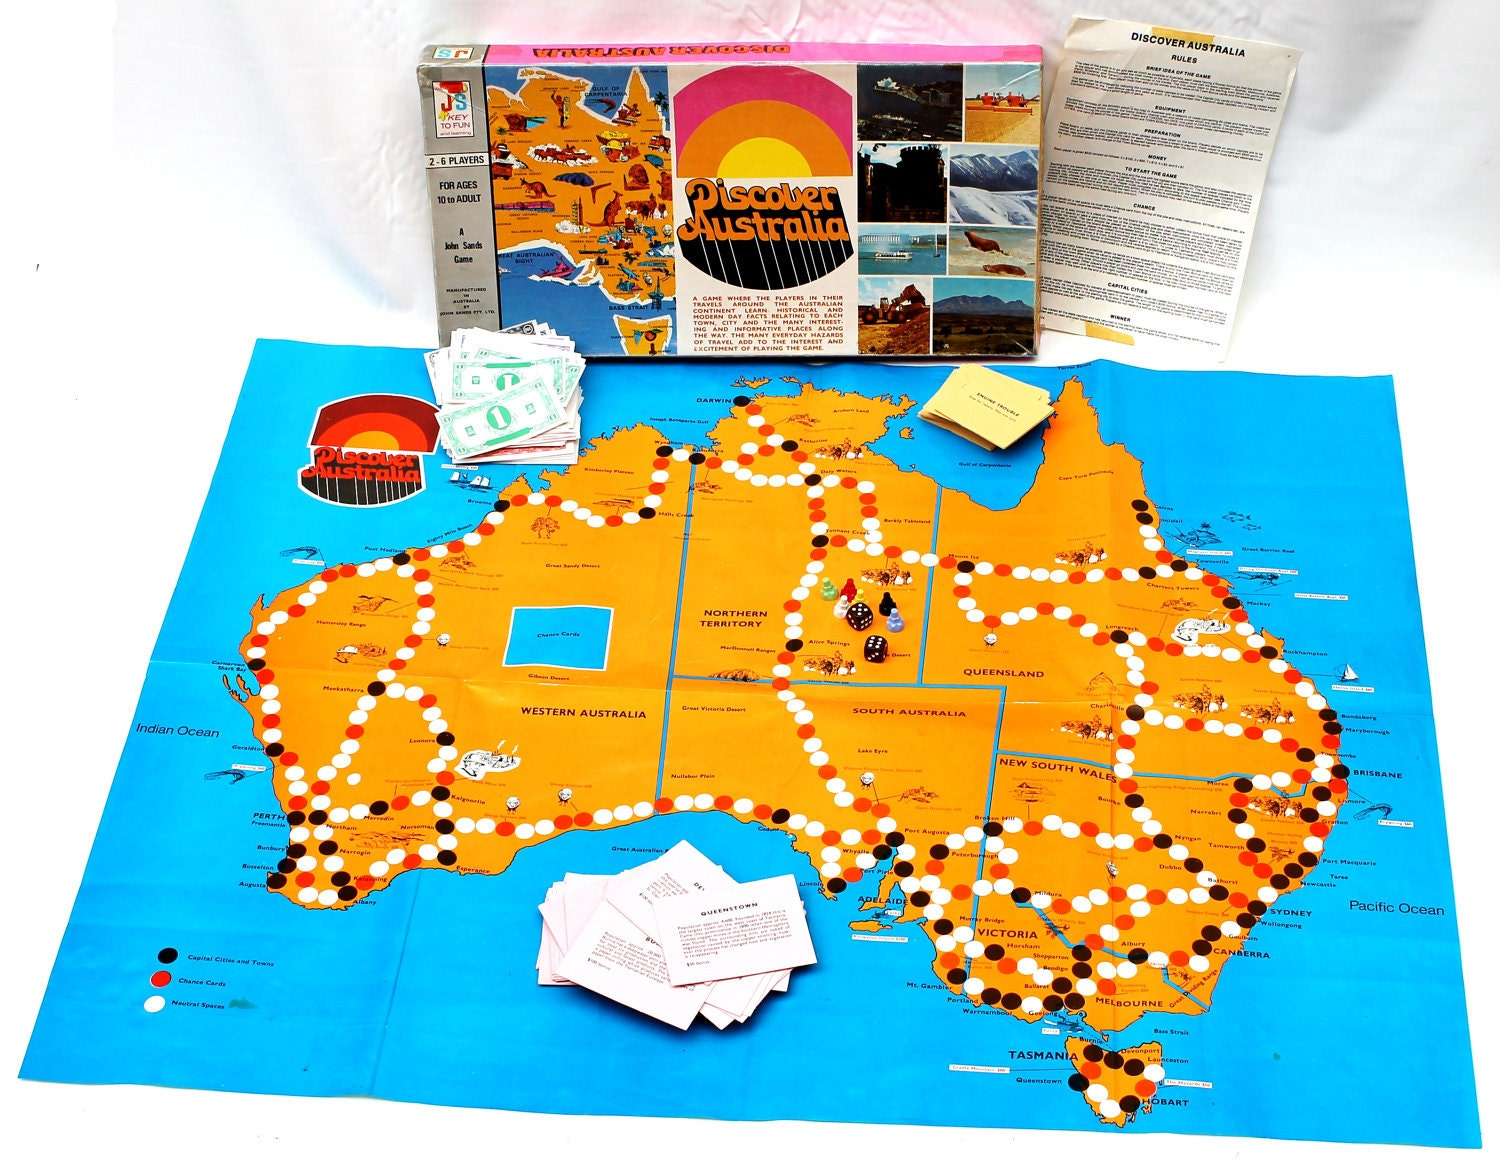 Dating board game in Sydney